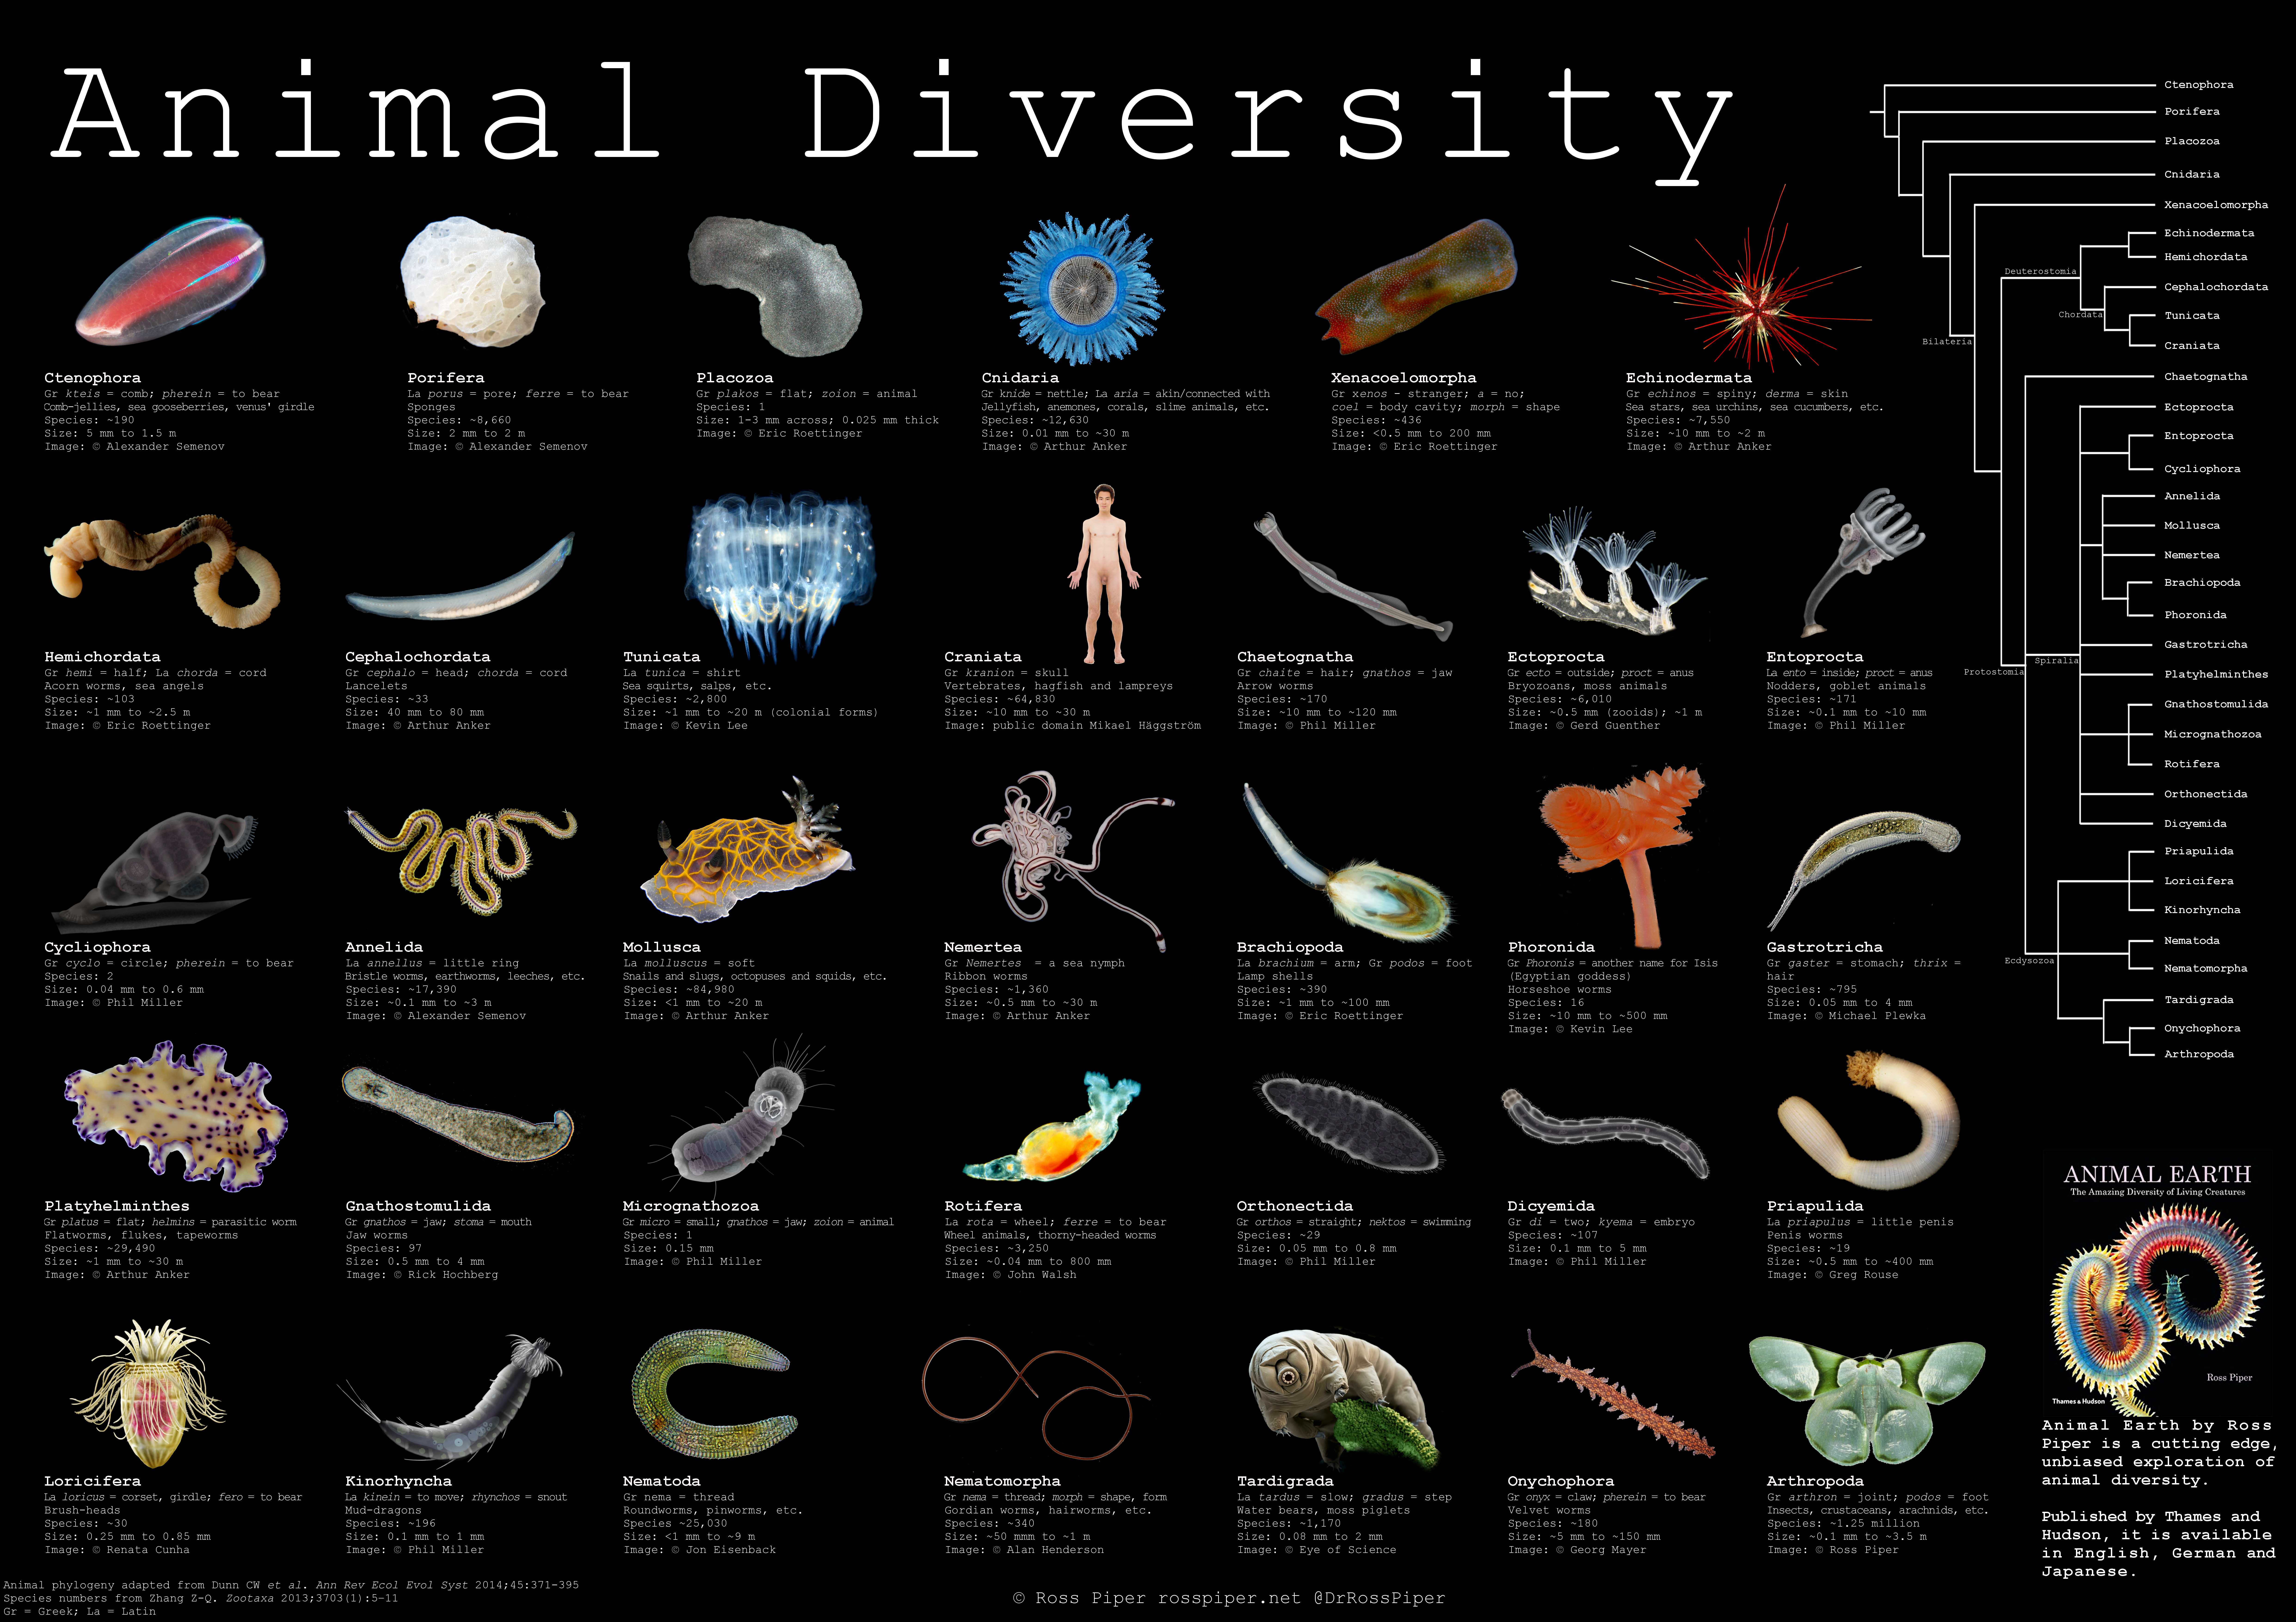 a1-animal-diversity-poster